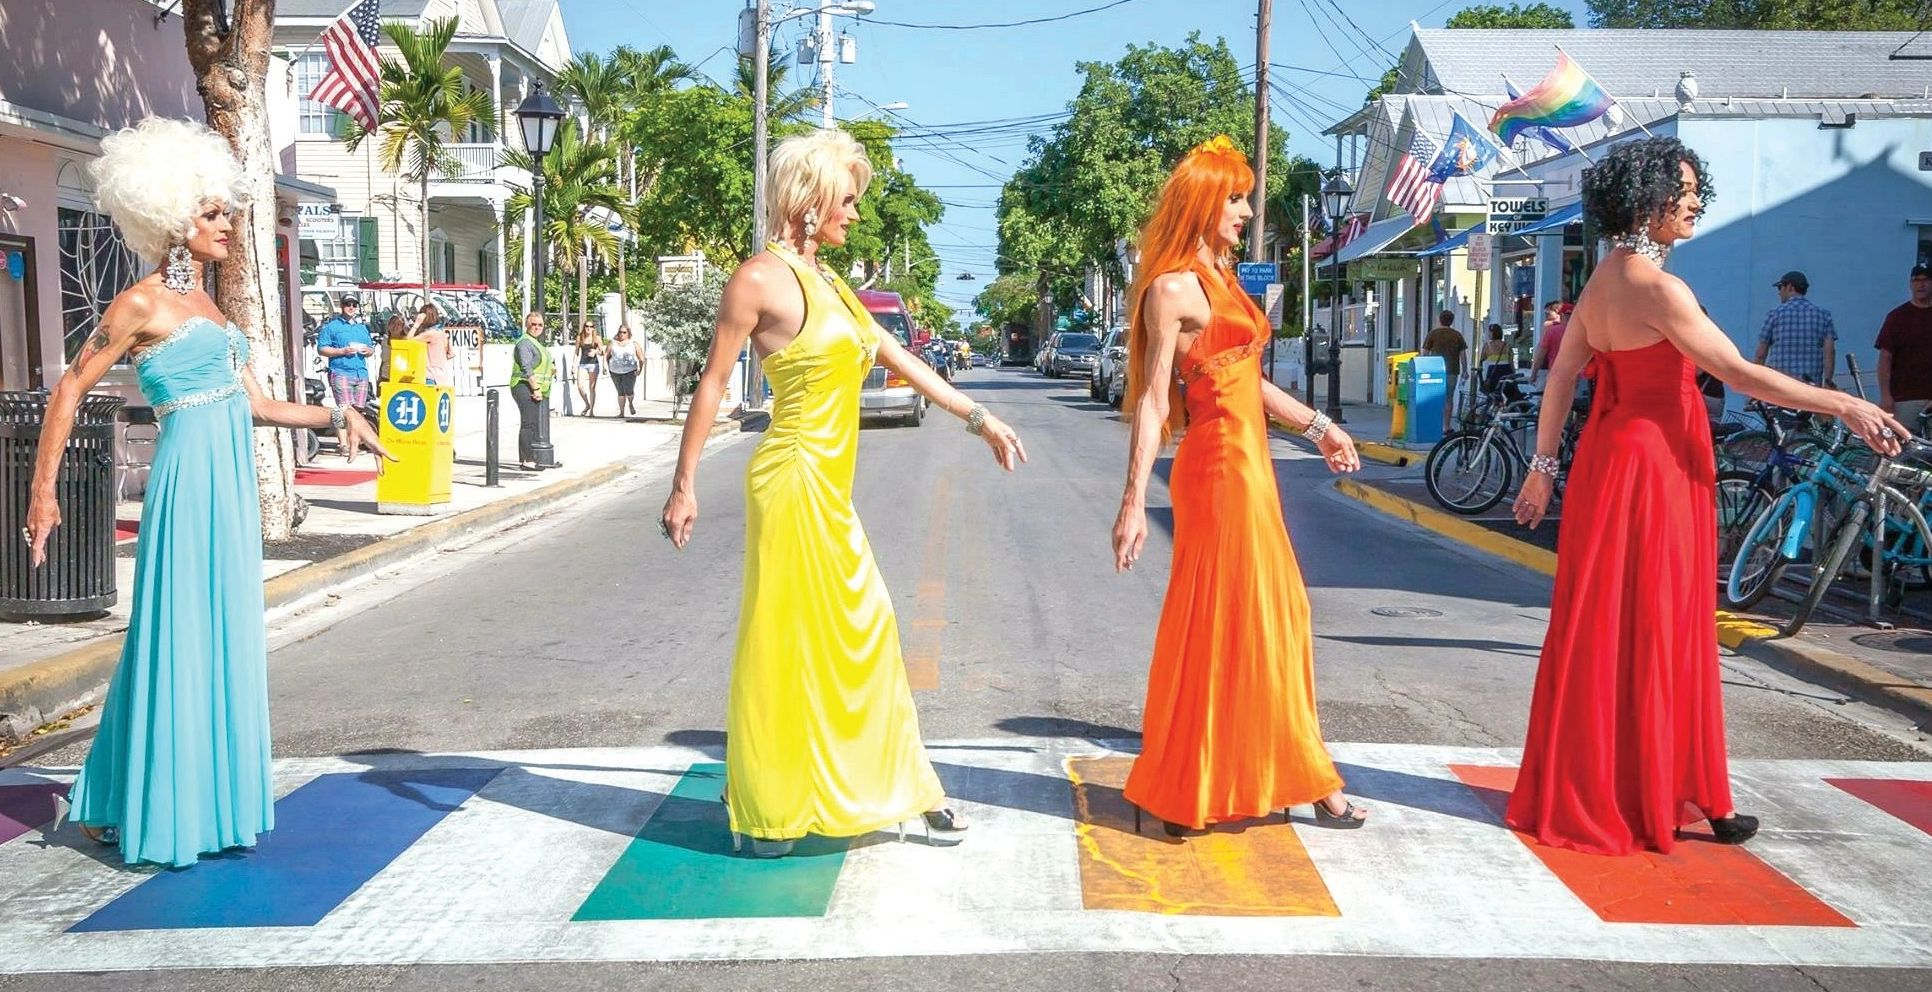 The World Famous 801 Girls, drag queens on Duval Street in Key West, Florida.